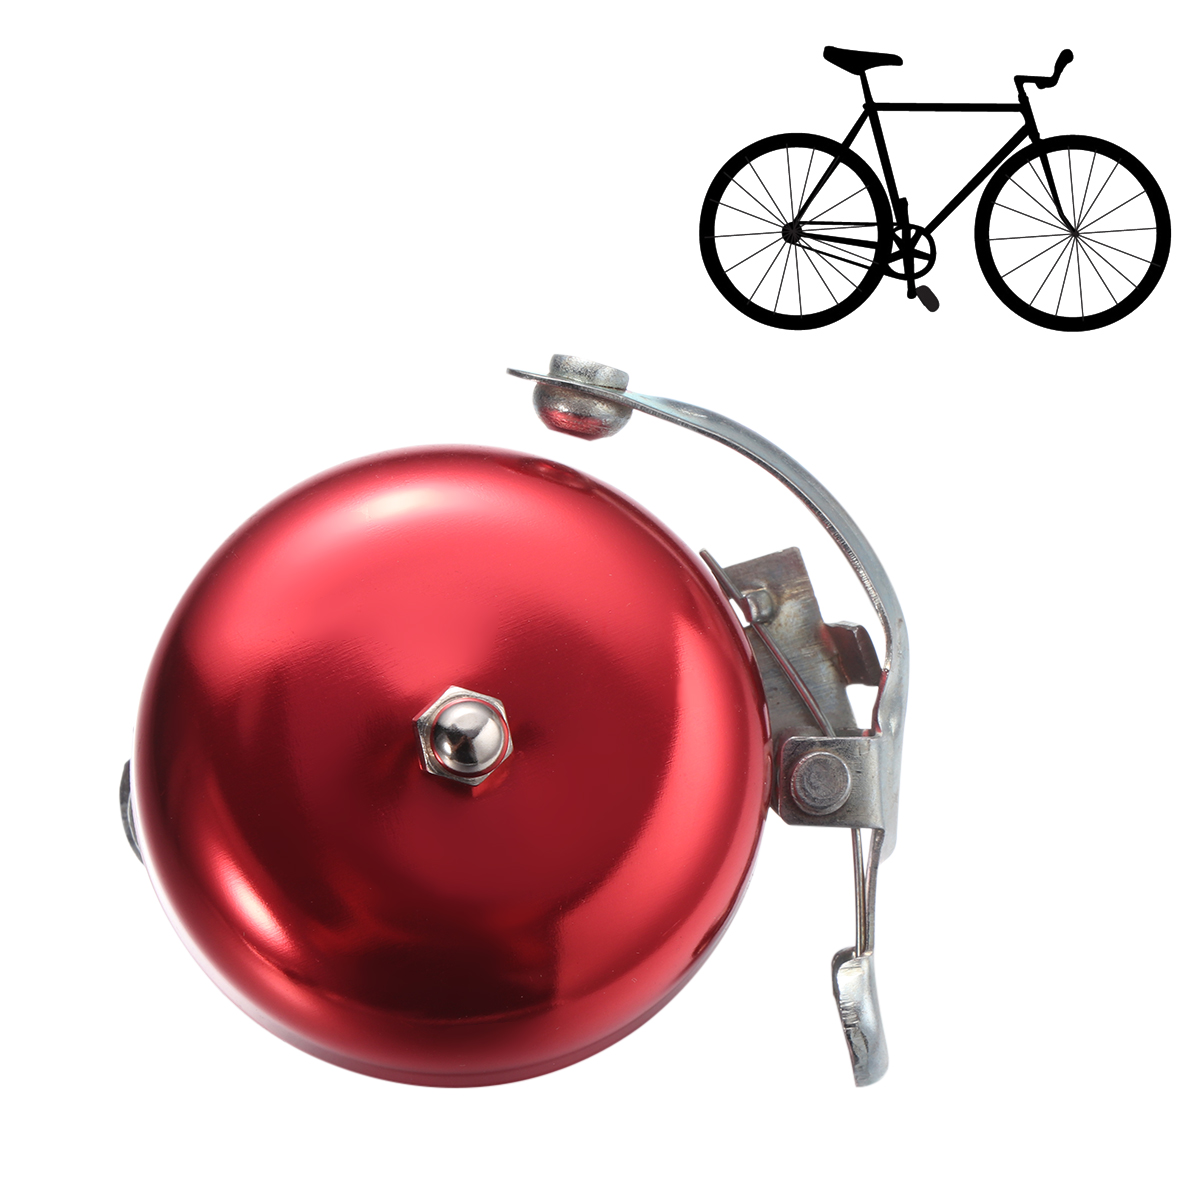 1pc Practical Creative Mountain Bike Bell Super Ring Horn for Families Friends